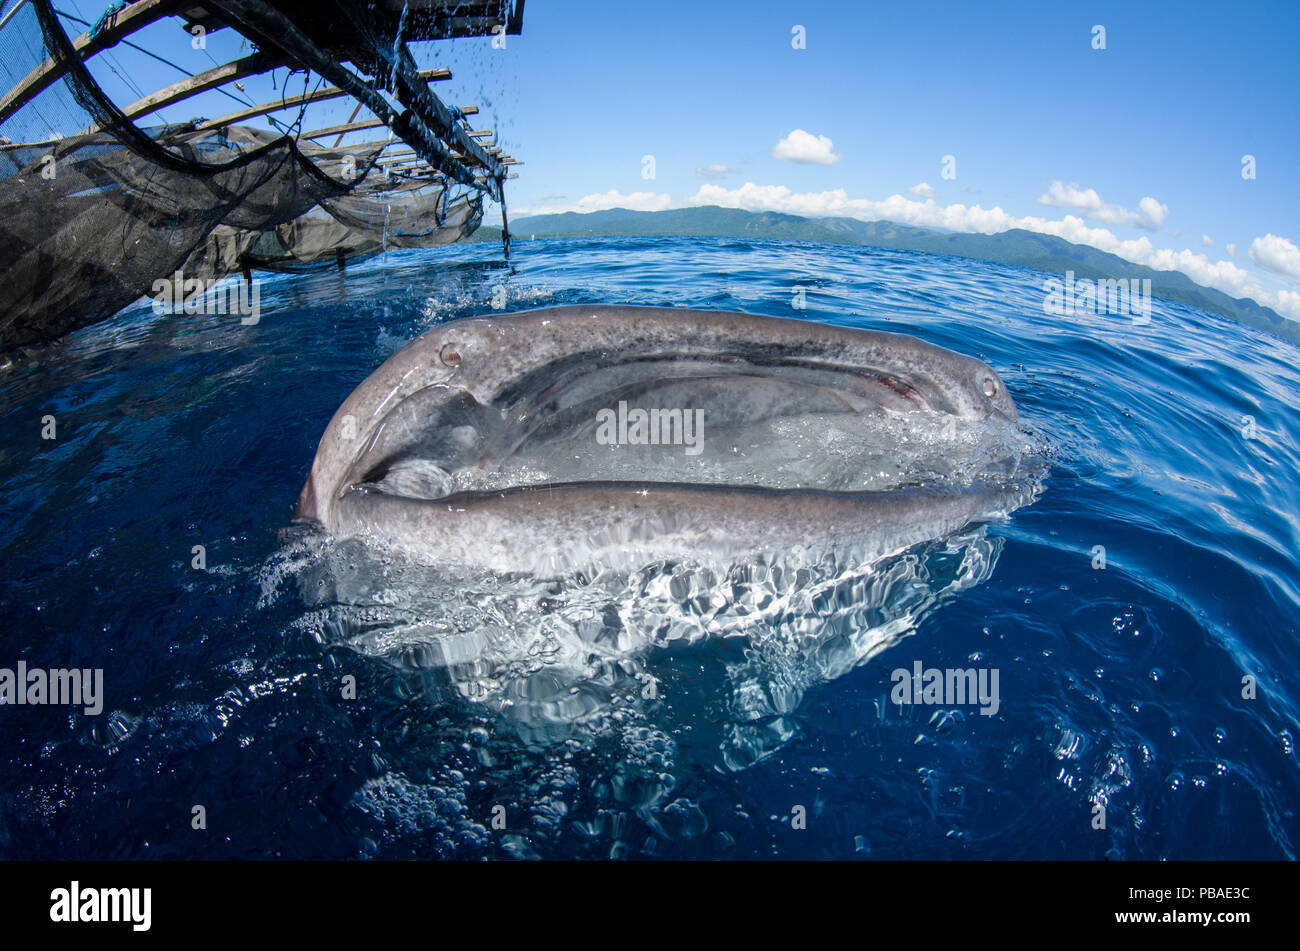 Whale Shark (Rhincodon typus) feeding at Bagan (floating fishing platform),  Cenderawasih Bay, West Papua, Indonesia. Winner of the Man and Nature Portfolio Award in the Terre Sauvage Nature Images Awards Competition 2015. - Stock Image